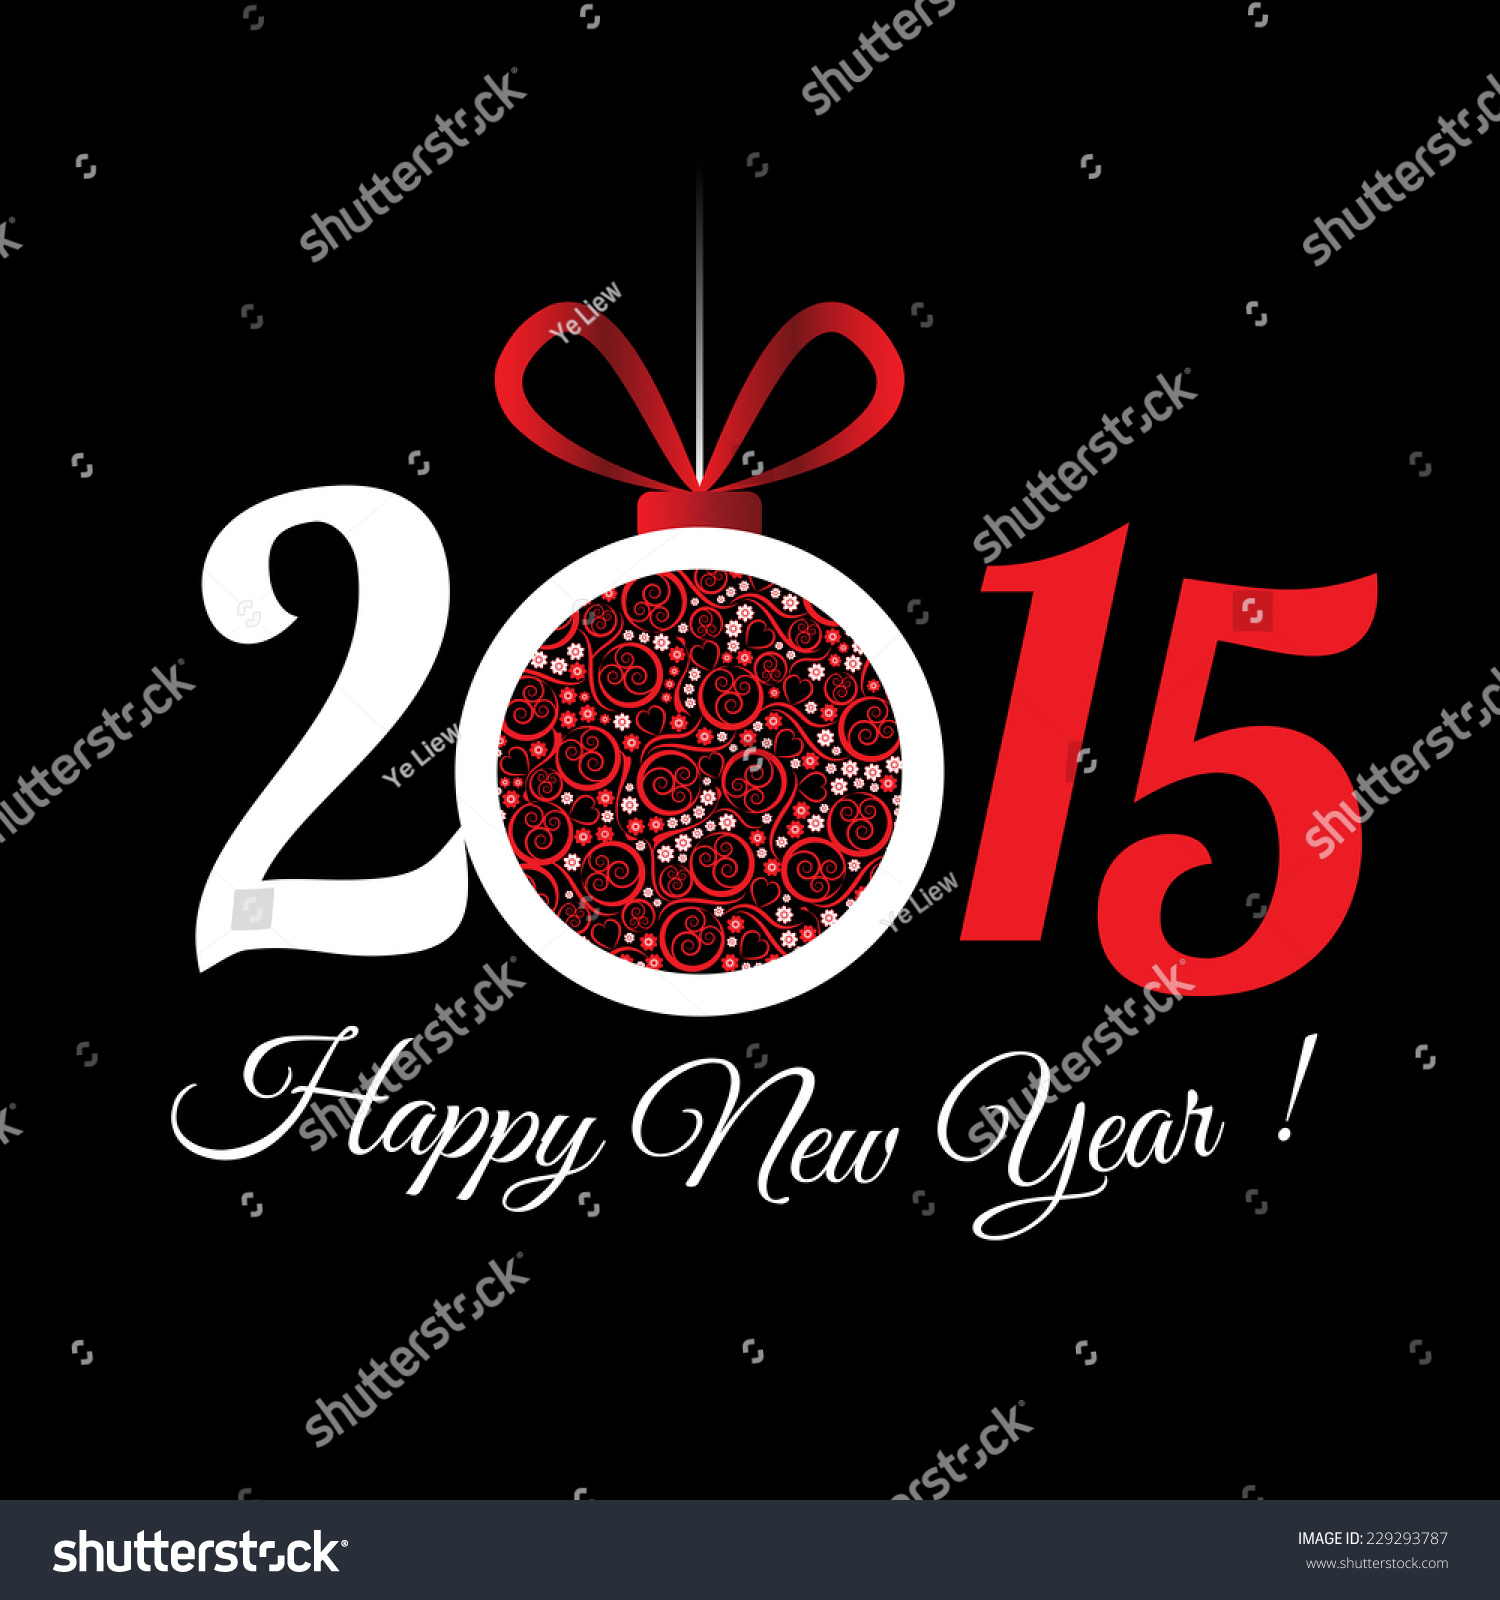 2015 Happy New Year Greeting Card Stock Vector 229293787 Shutterstock